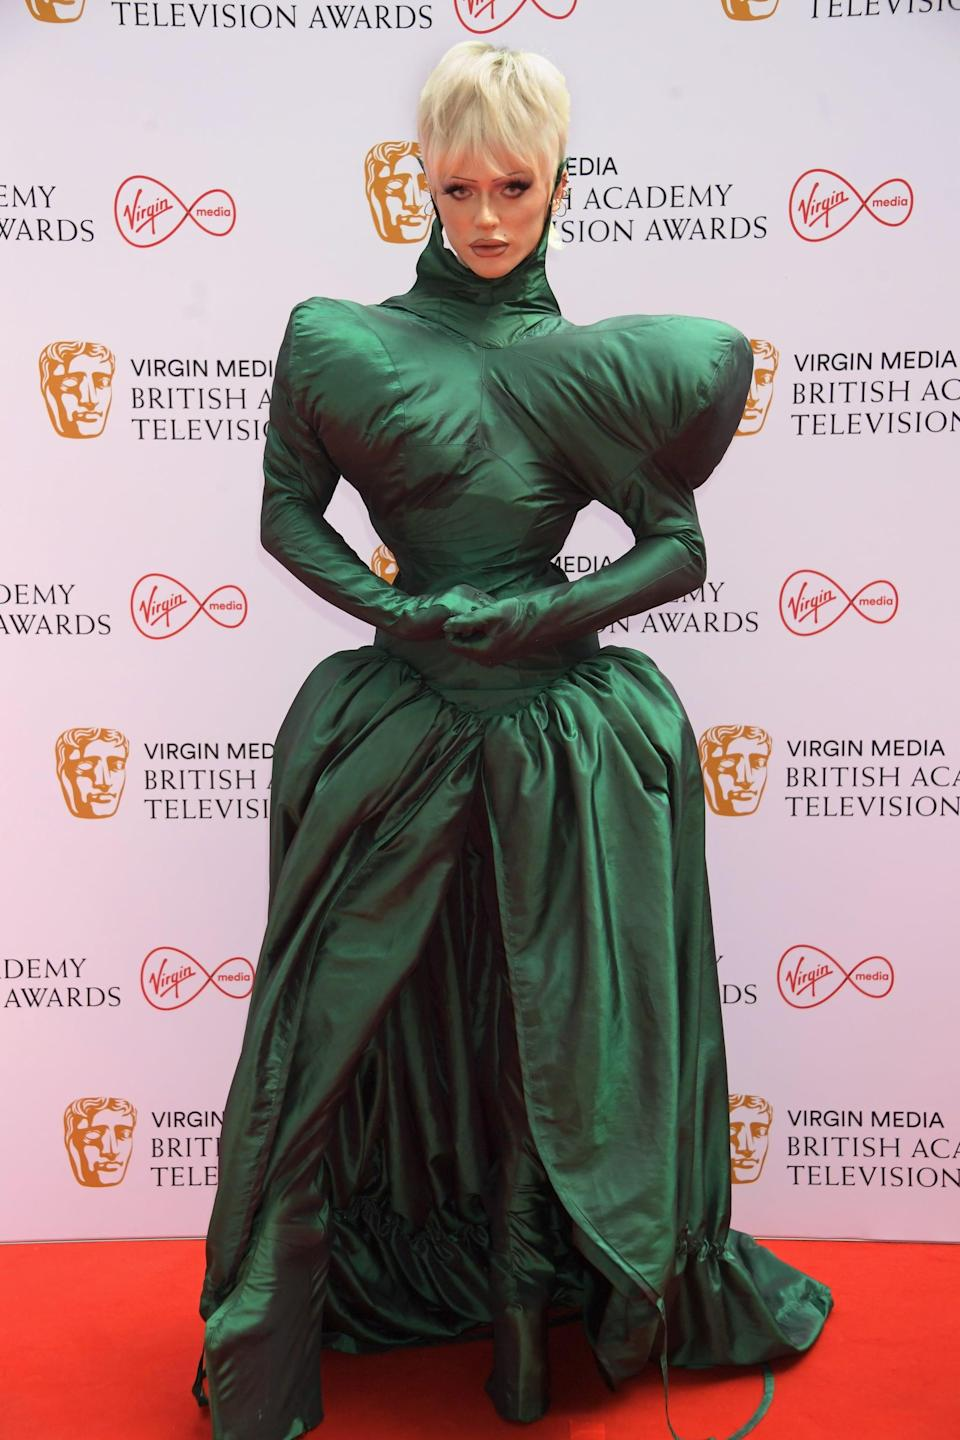 <p>Bimini Bon Boulash wore an emerald gown with exaggerated proportions created by Central Saint Martins students Ása Bríet Brattaberg, Dem James Erik Paris, and Kitty Hemmings. </p>